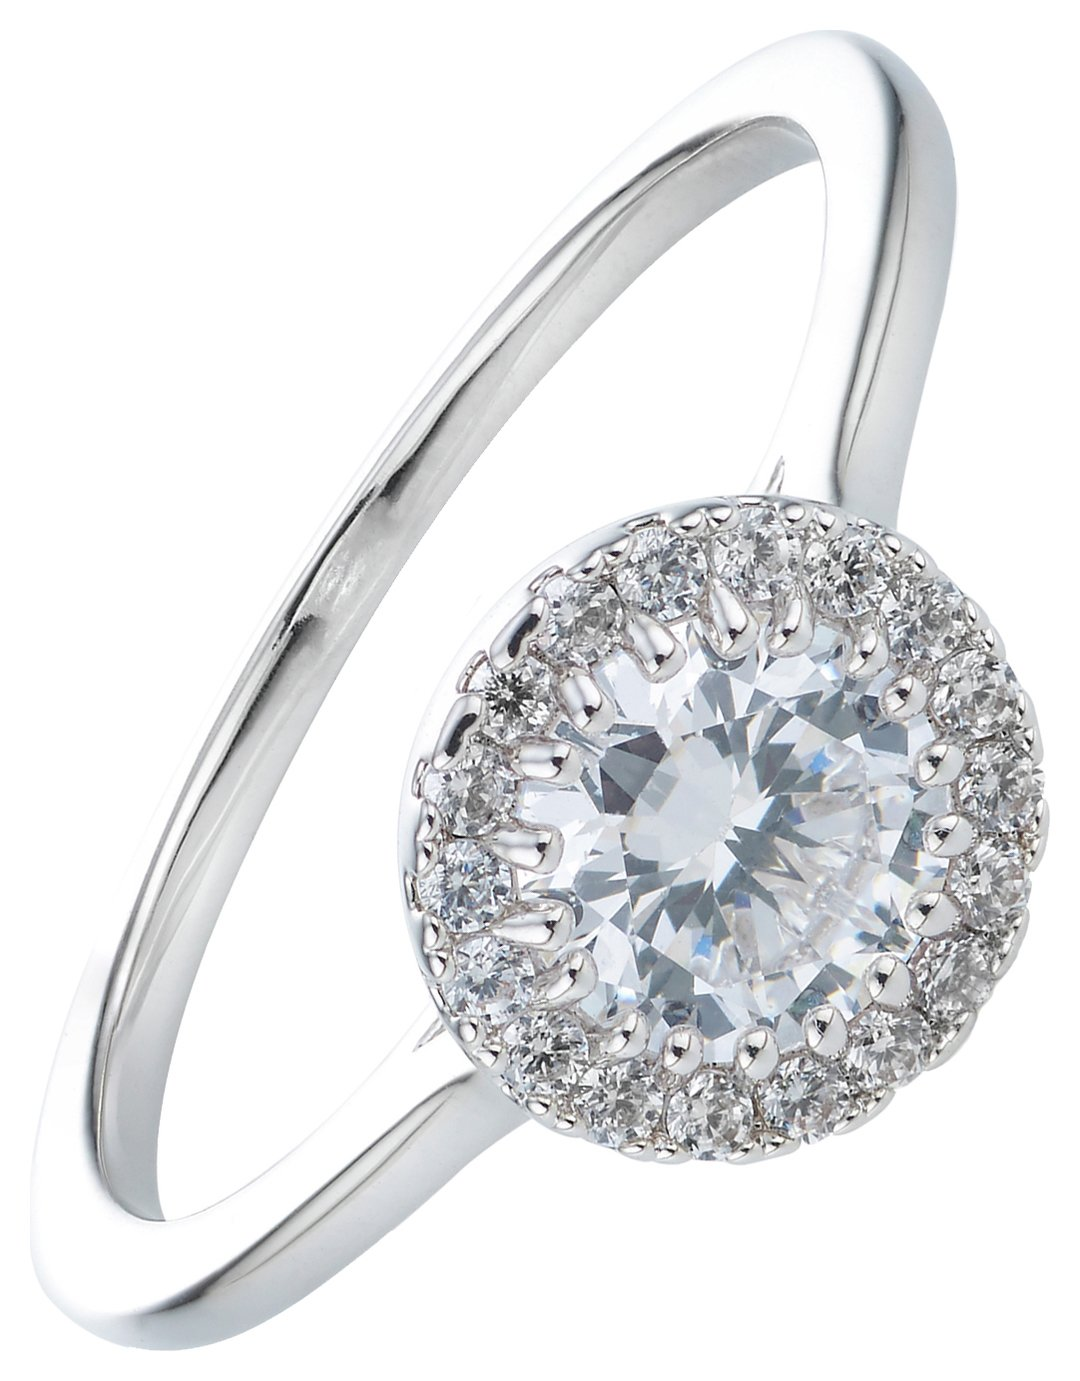 Buckley Silver Colour Cubic Zirconia Roulette Ring - Small